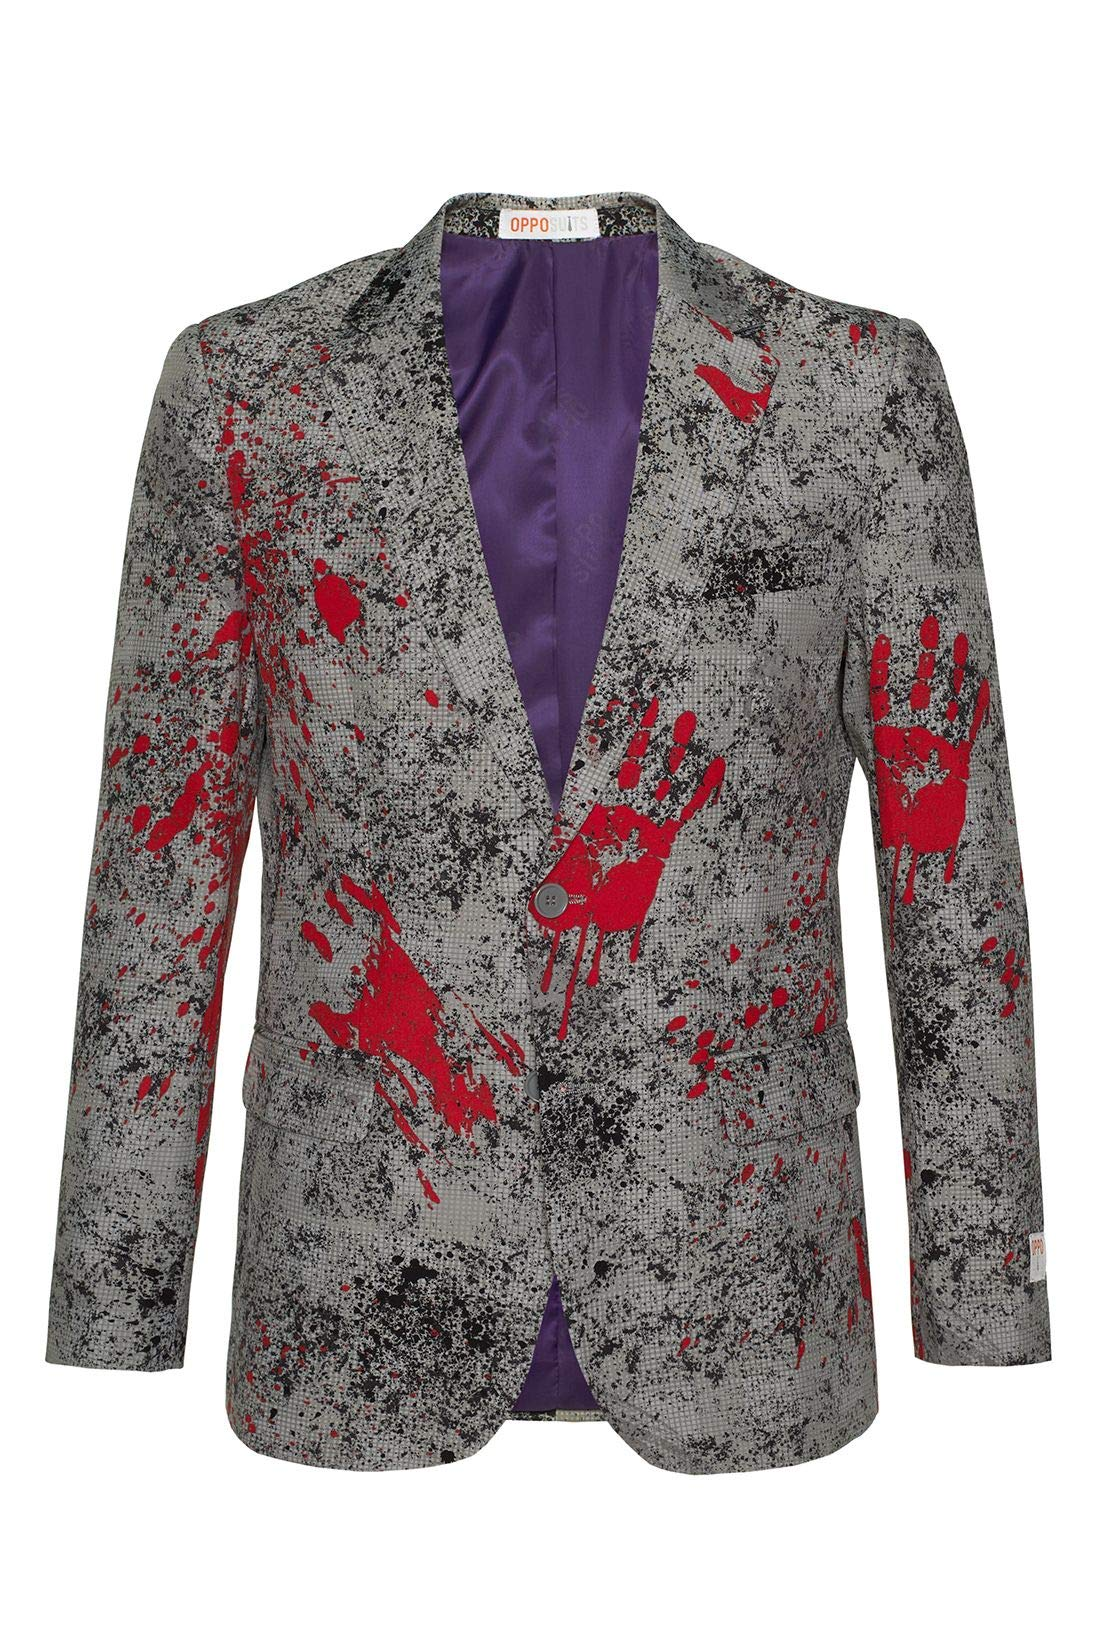 OppoSuits Halloween Jackets for Men - Zombiac - Includes Stylish Blazer - US 40 by OppoSuits